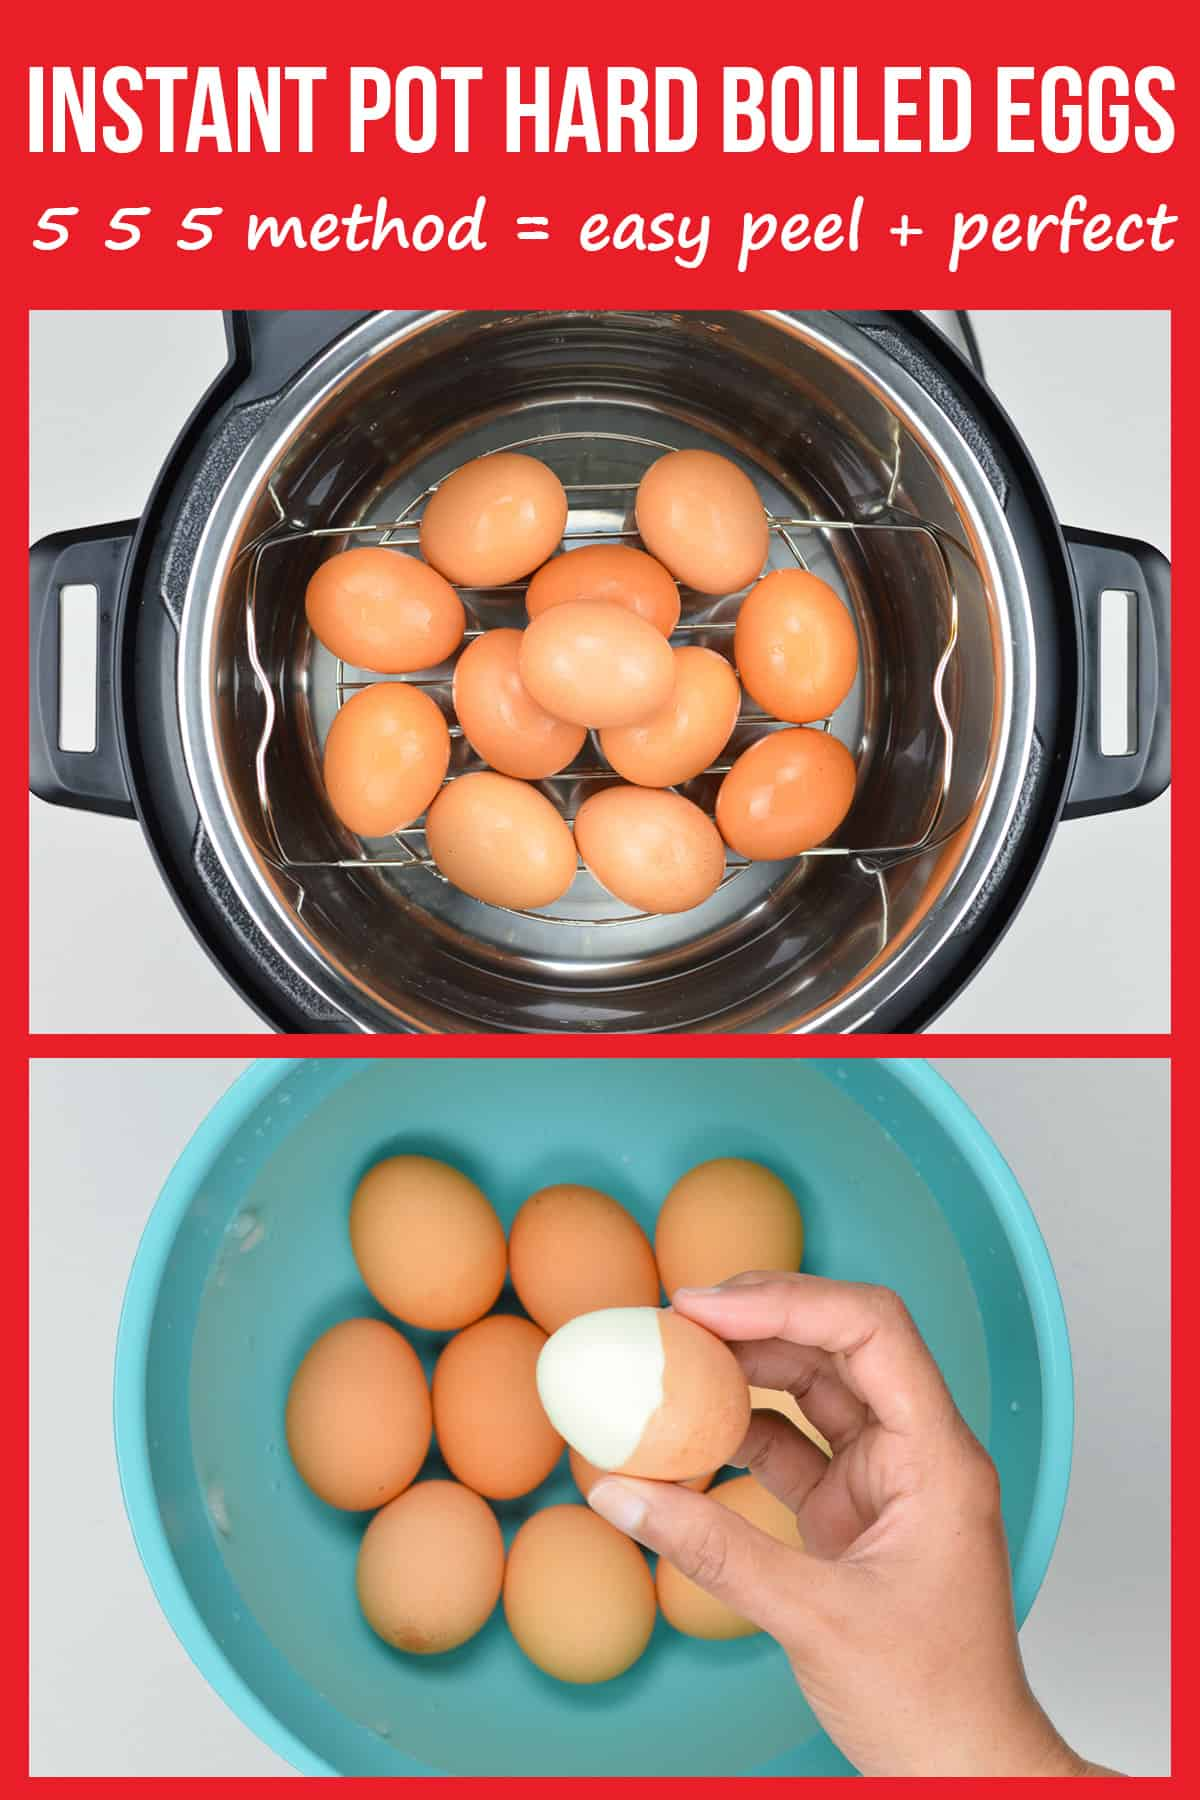 a collage of 2 photos stacked vertically - the top one showing eggs stacked inside the instant pot, and the bottom one showing a hand holding a half peeled egg over a bowl of unpeeled eggs in the ice bath